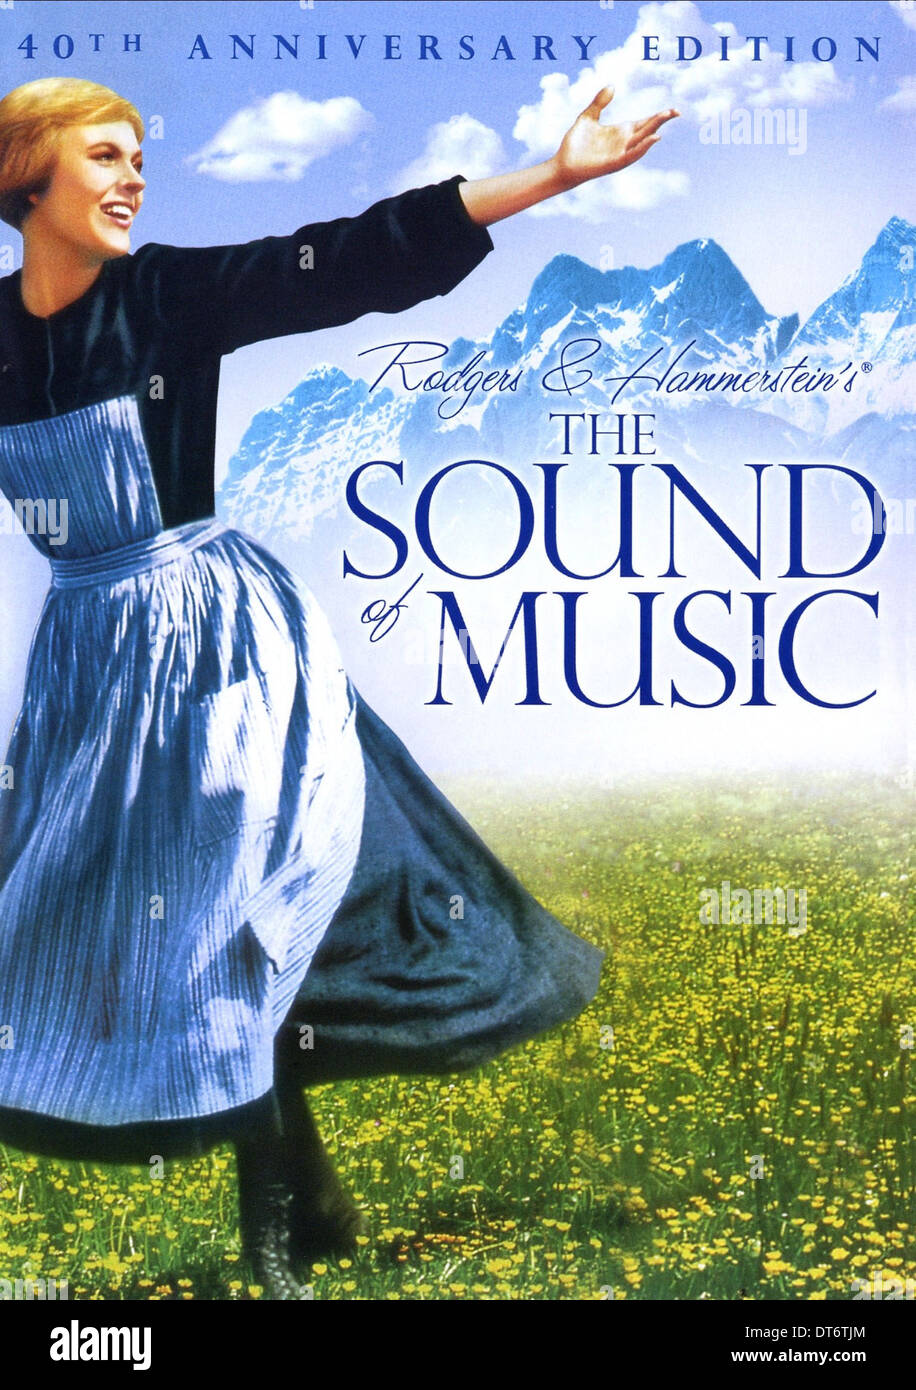 The Sound of Music Poster////The Sound of Music Movie Poster////Movie Poster////Poster